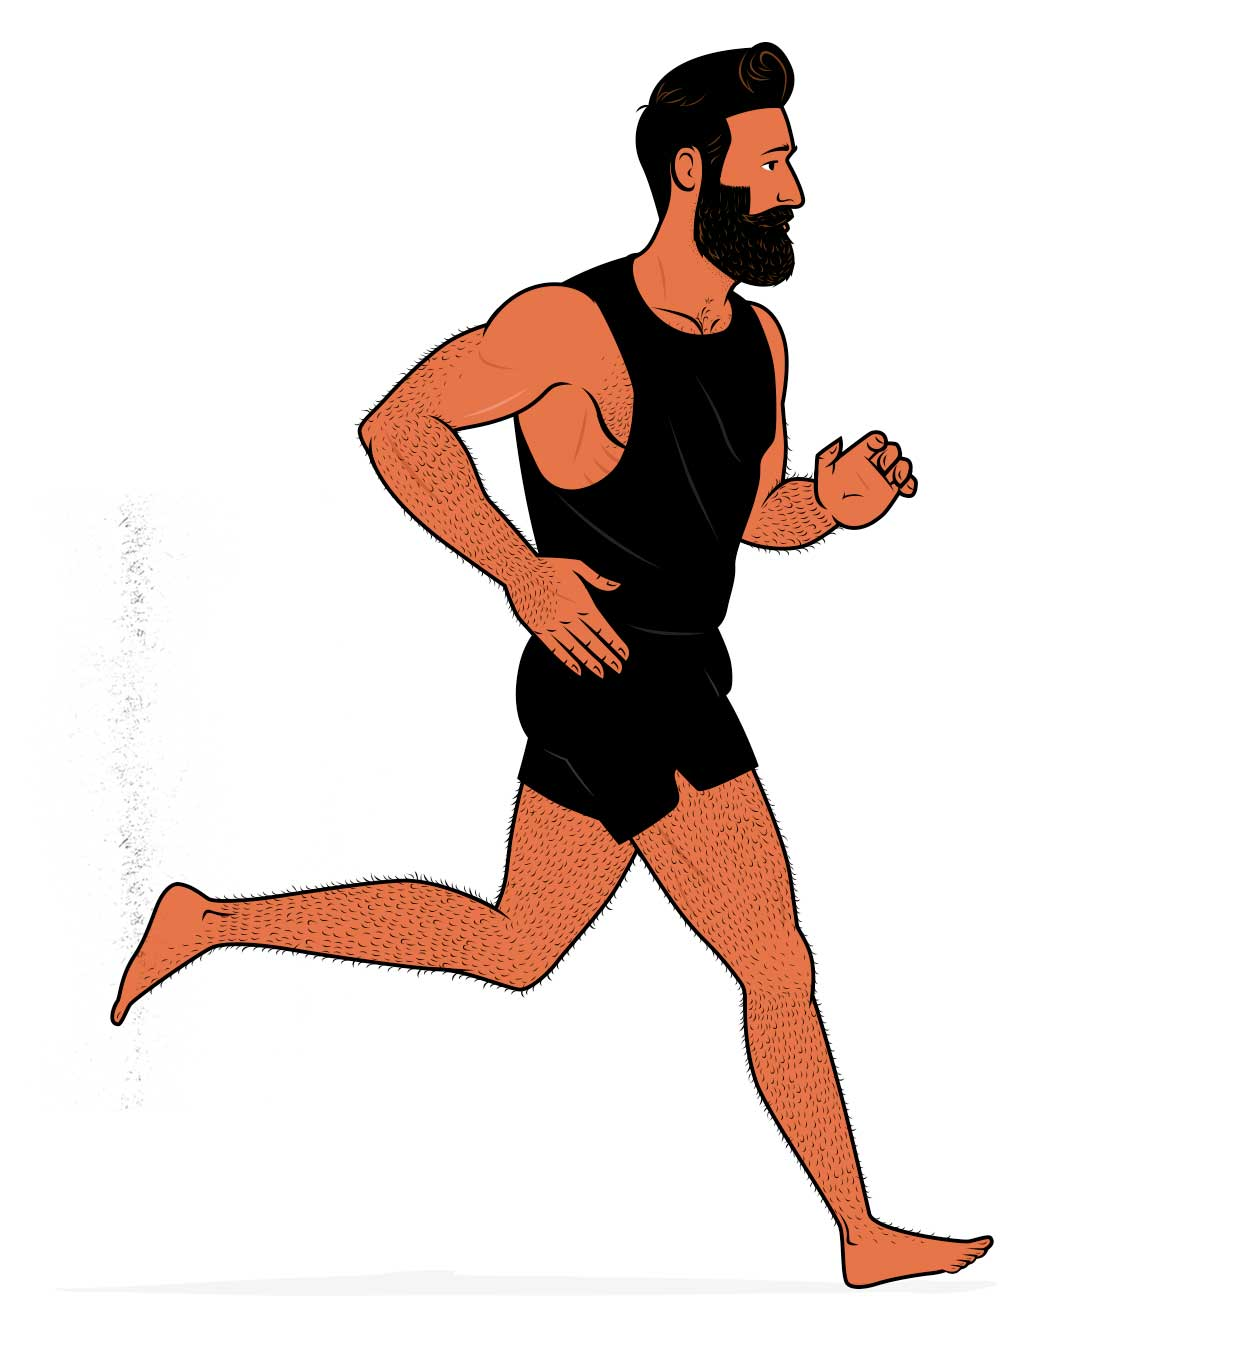 Illustration of a bodybuilder doing cardio while building muscle.